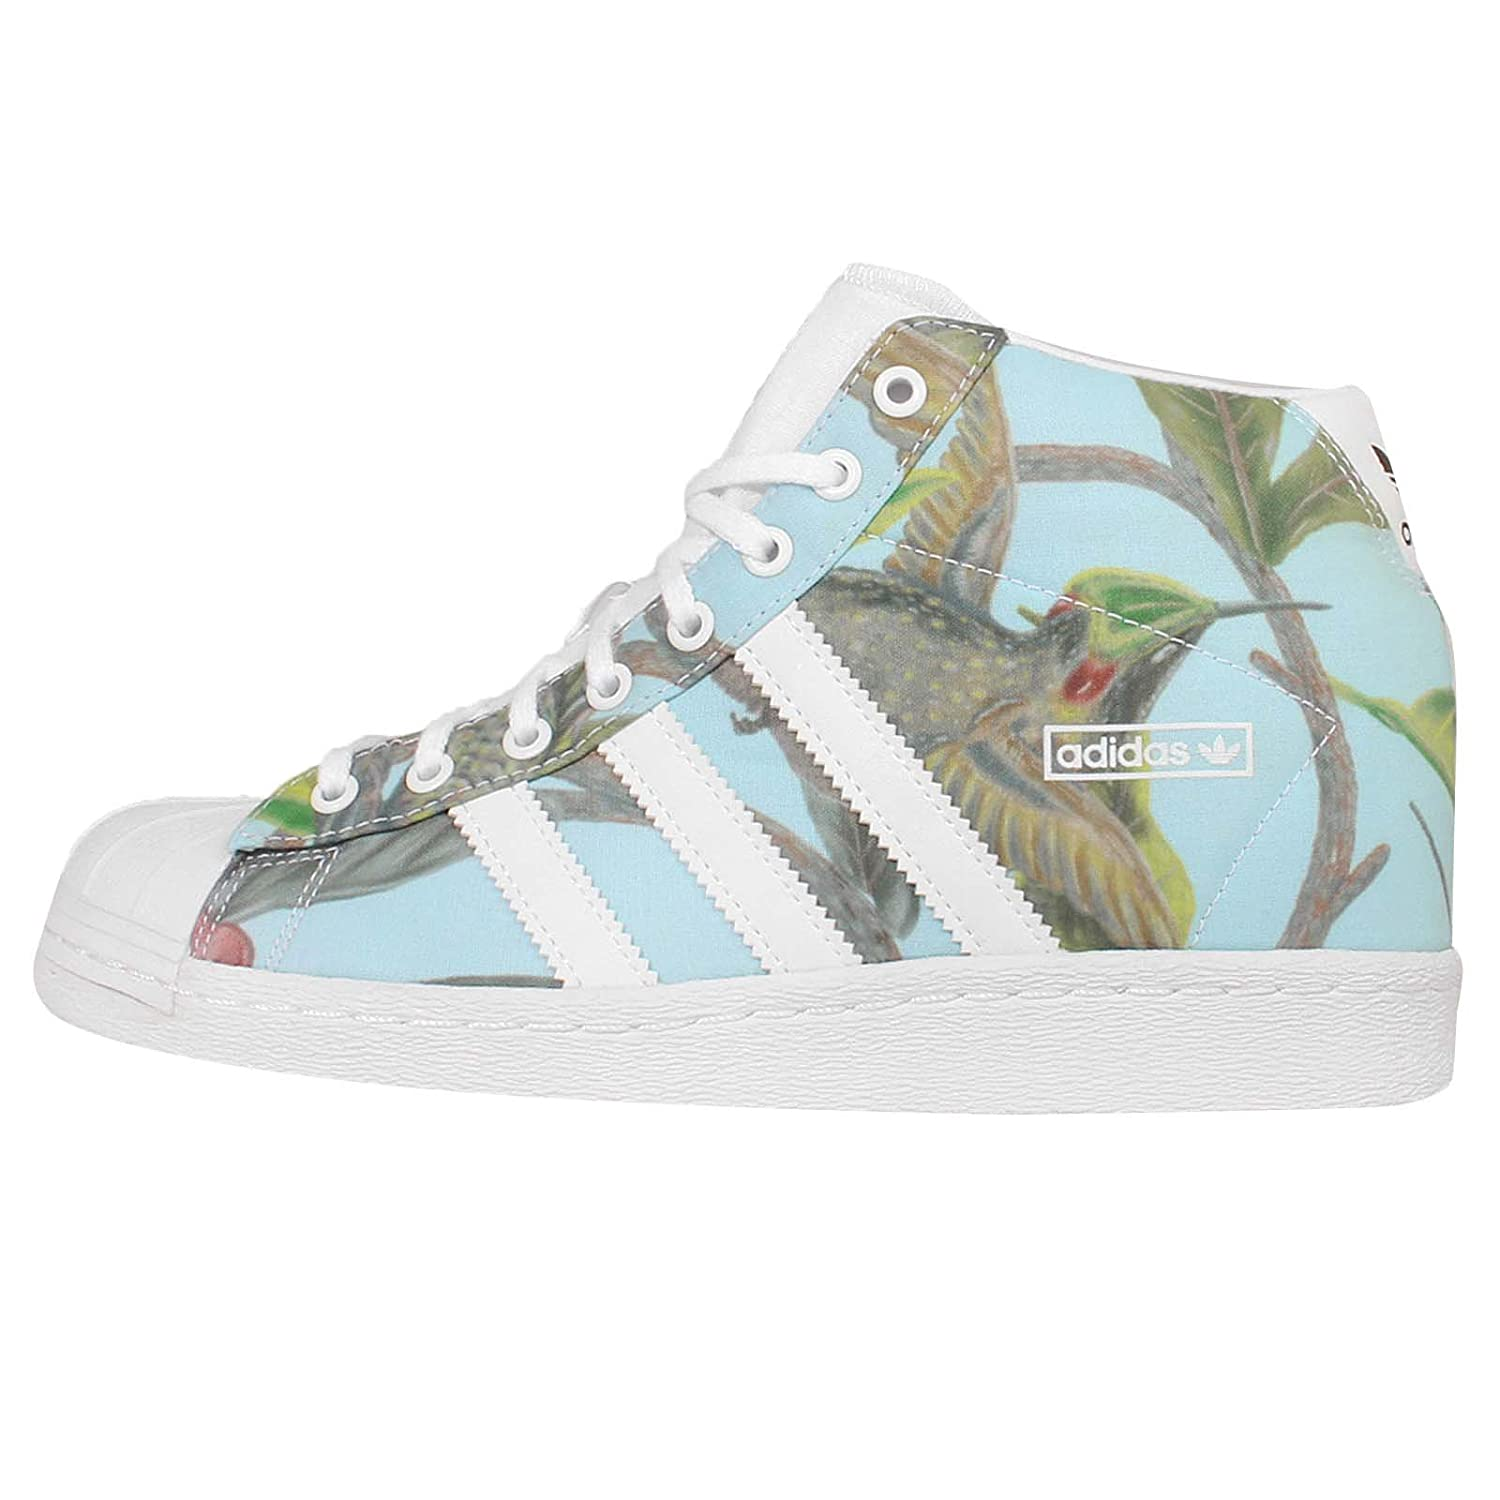 adidas Originals Women\u0027s Superstar Up W White and Black Leather Sneakers -  7 UK: Buy Online at Low Prices in India - Amazon.in